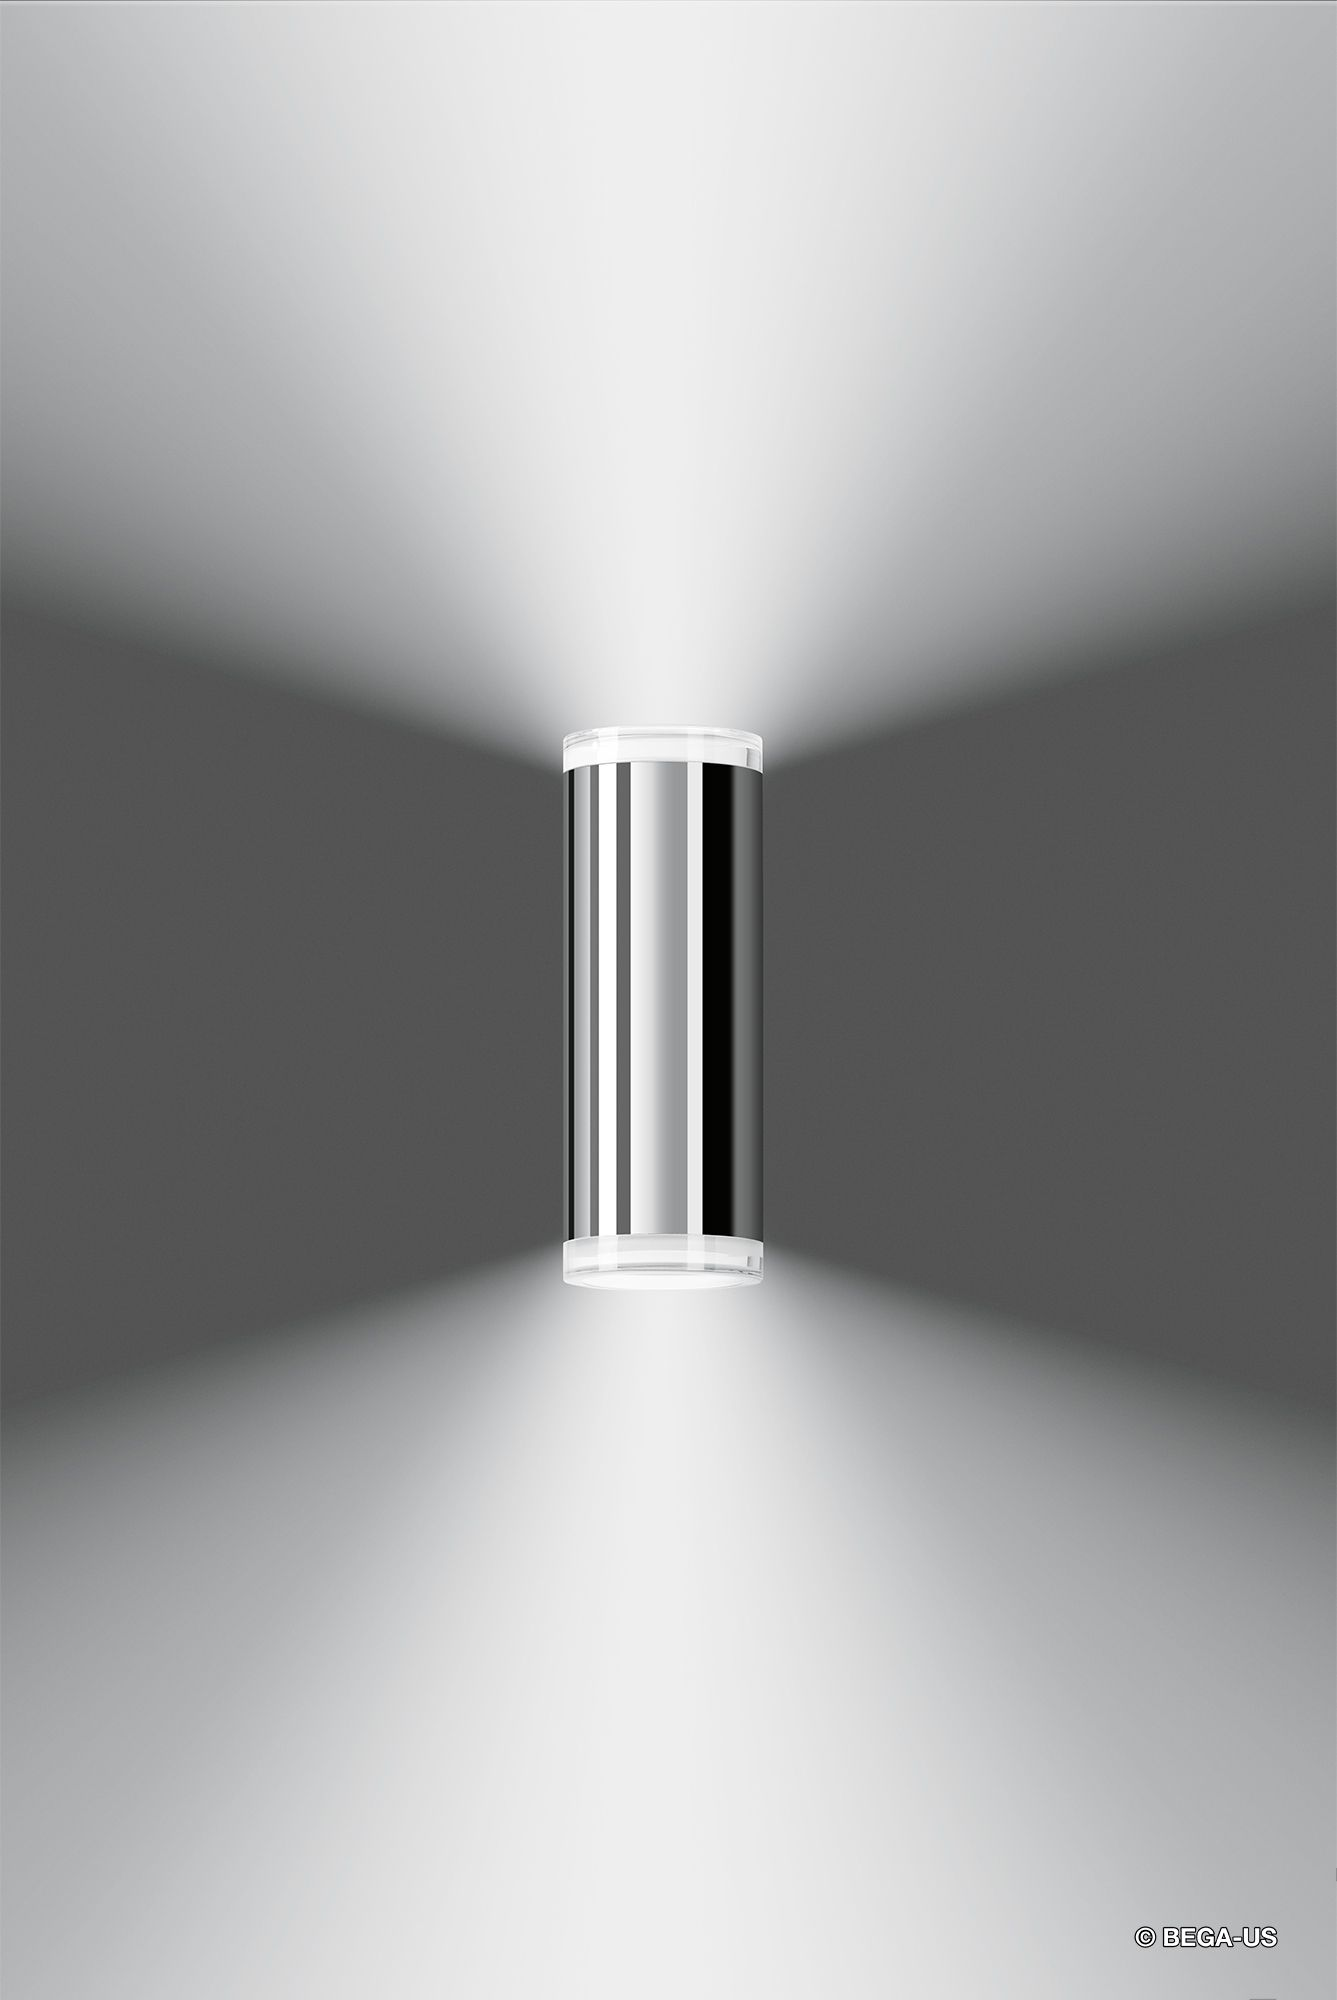 Surface Wall W Up And Down Lighting Wall Mounted Led And Metal Halide Cylinder Luminaires With A Symmetrical Up Down Light Distribut In 2021 Light Wall Wall Fixtures